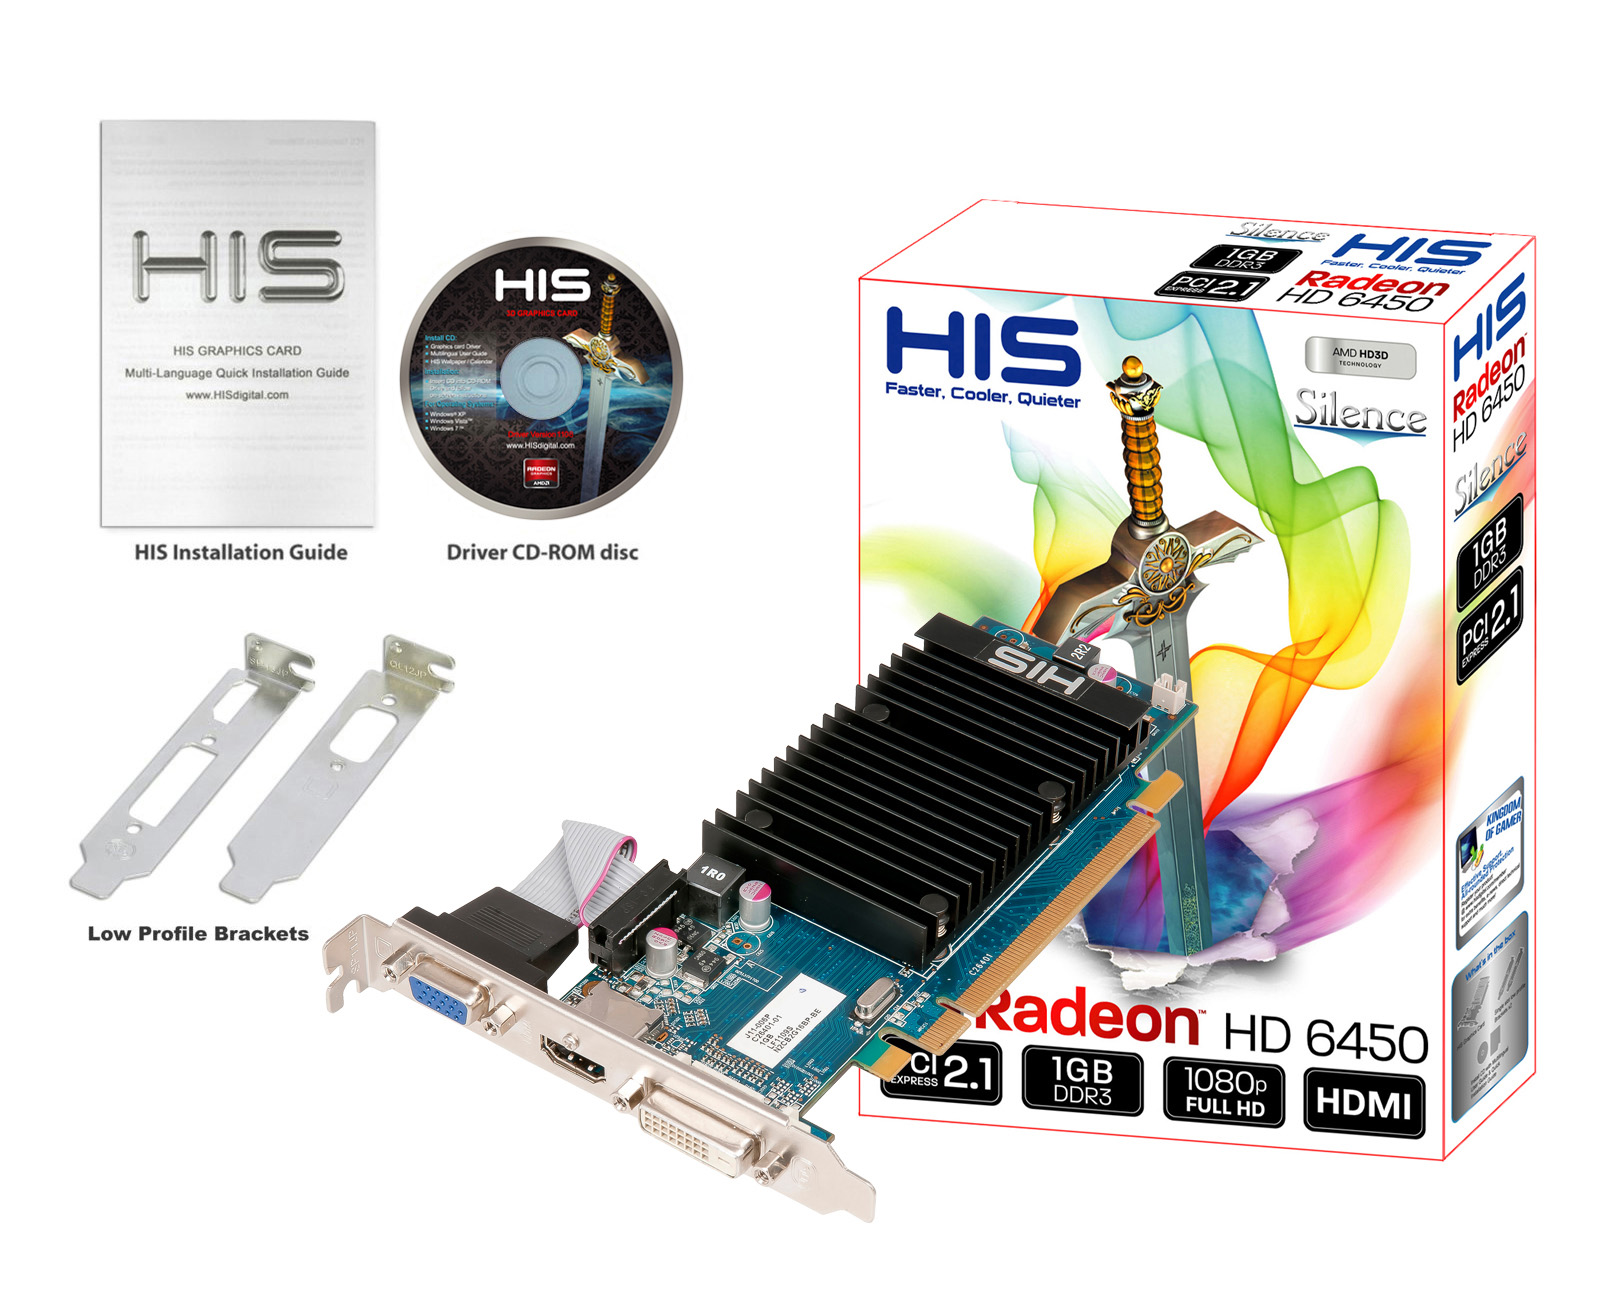 His 6450 Silence 1gb Ddr3 Pci E Dvi Hdmi Vga Hd 6400 Series Desktop Graphics Products His Graphic Cards